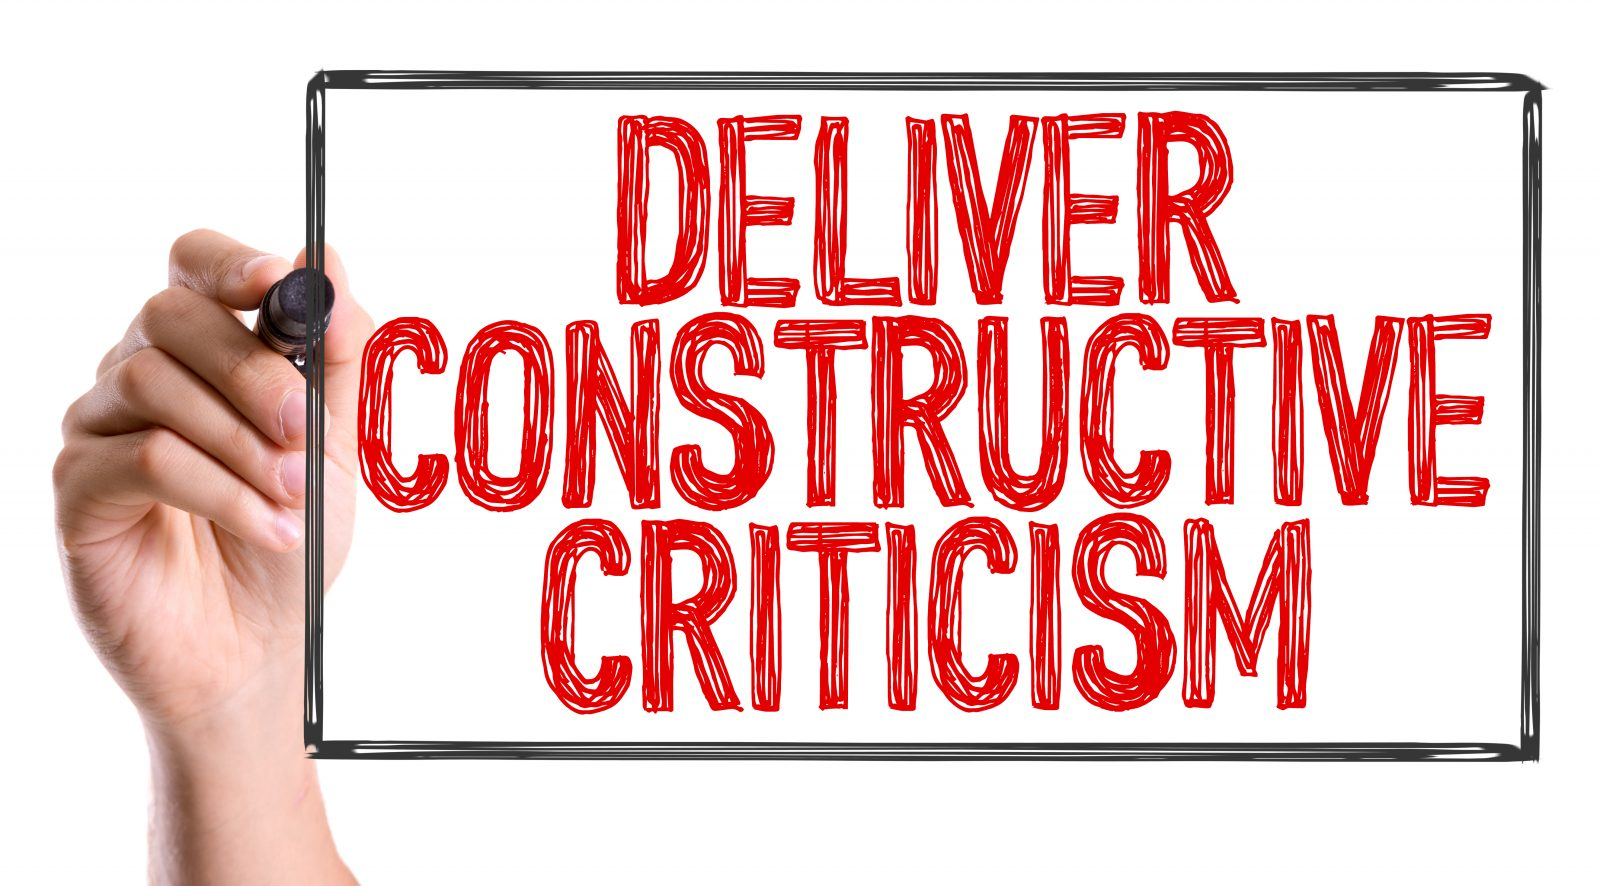 the importance of Constructive Criticism